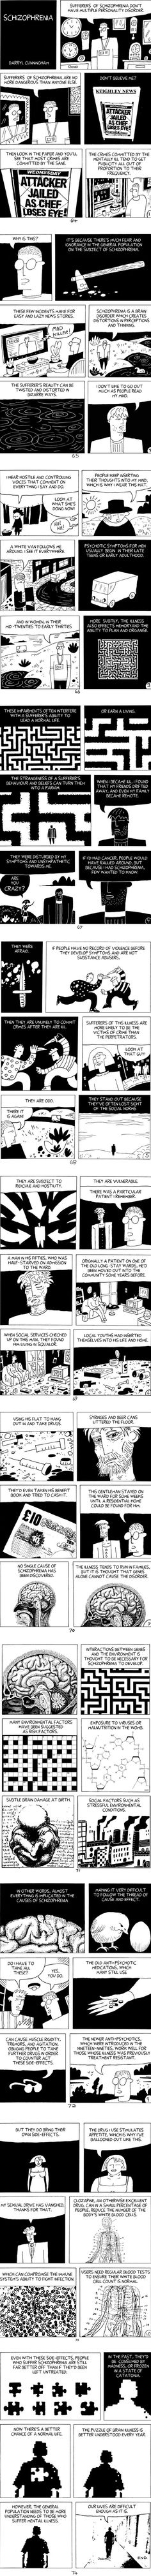 I have to admit, this graphic novella made me feel more than a little ashamed of myself.  I believe I've been guilty of this prejudice against schizophrenia before.  Important information for all of us to read.